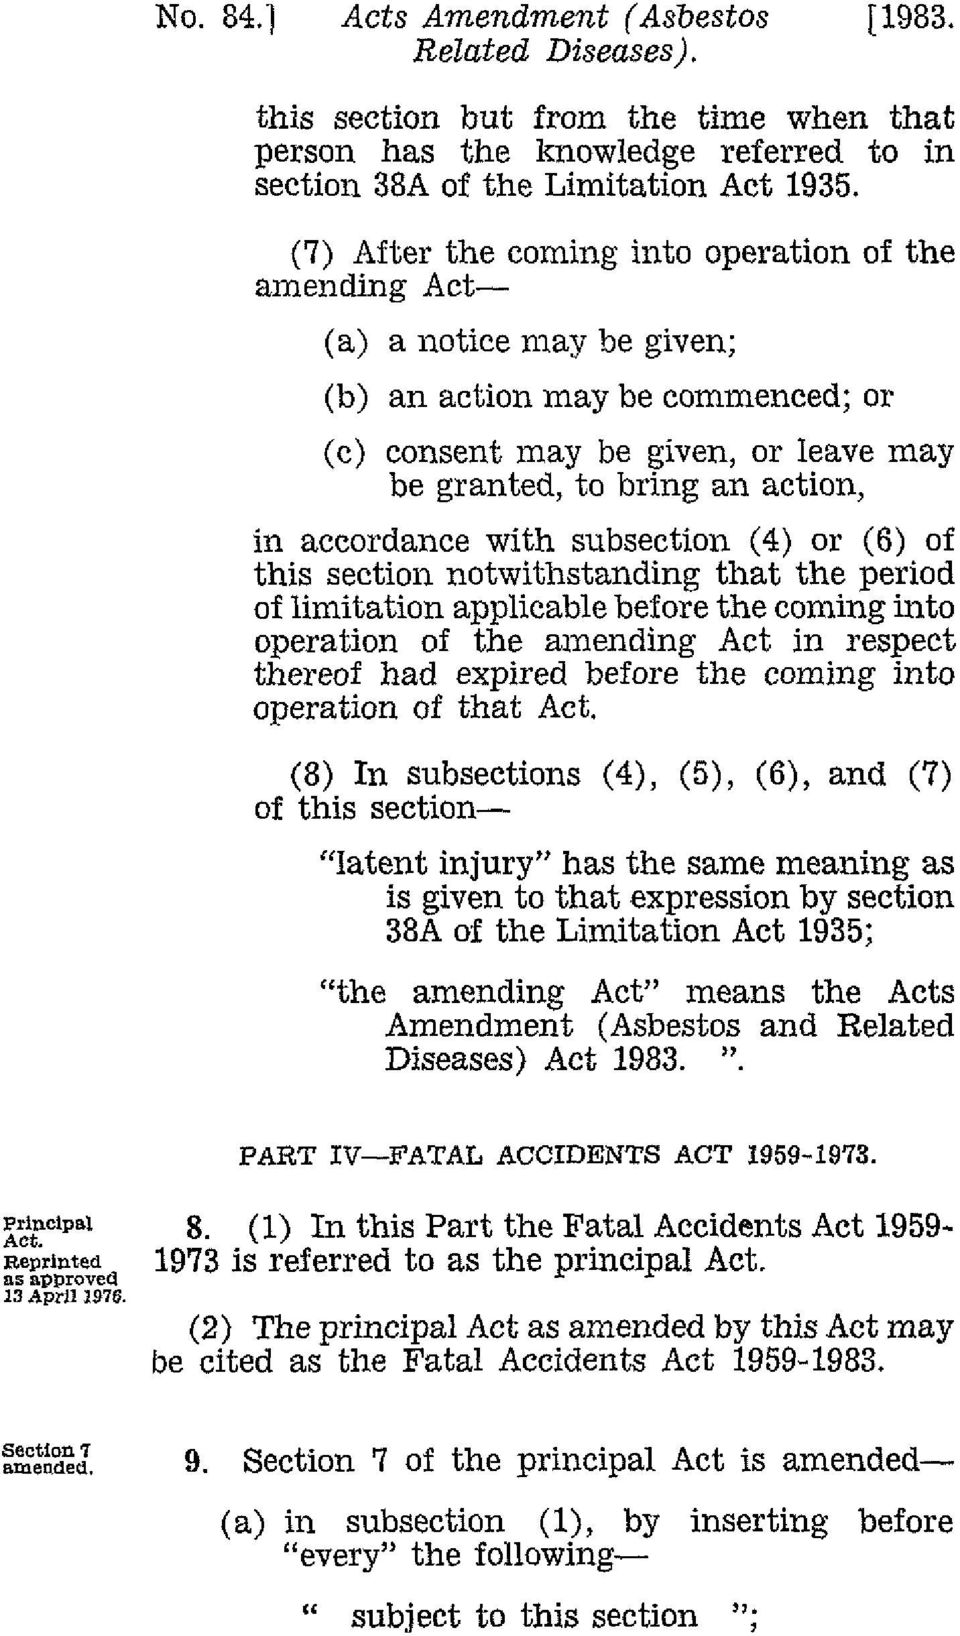 subsection (4) or (6) of this section notwithstanding that the period of limitation applicable before the coming into operation of the amending Act in respect thereof had expired before the coming